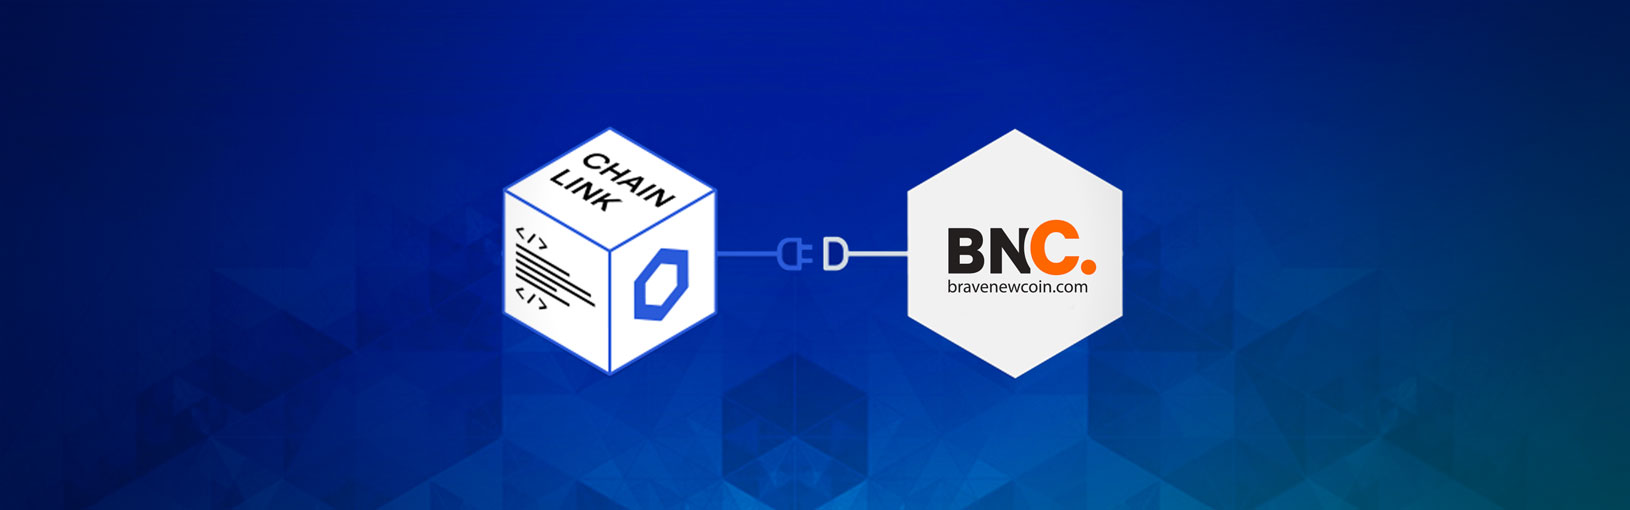 ChainLink: A Decentralized Oracle Network » Brave New Coin